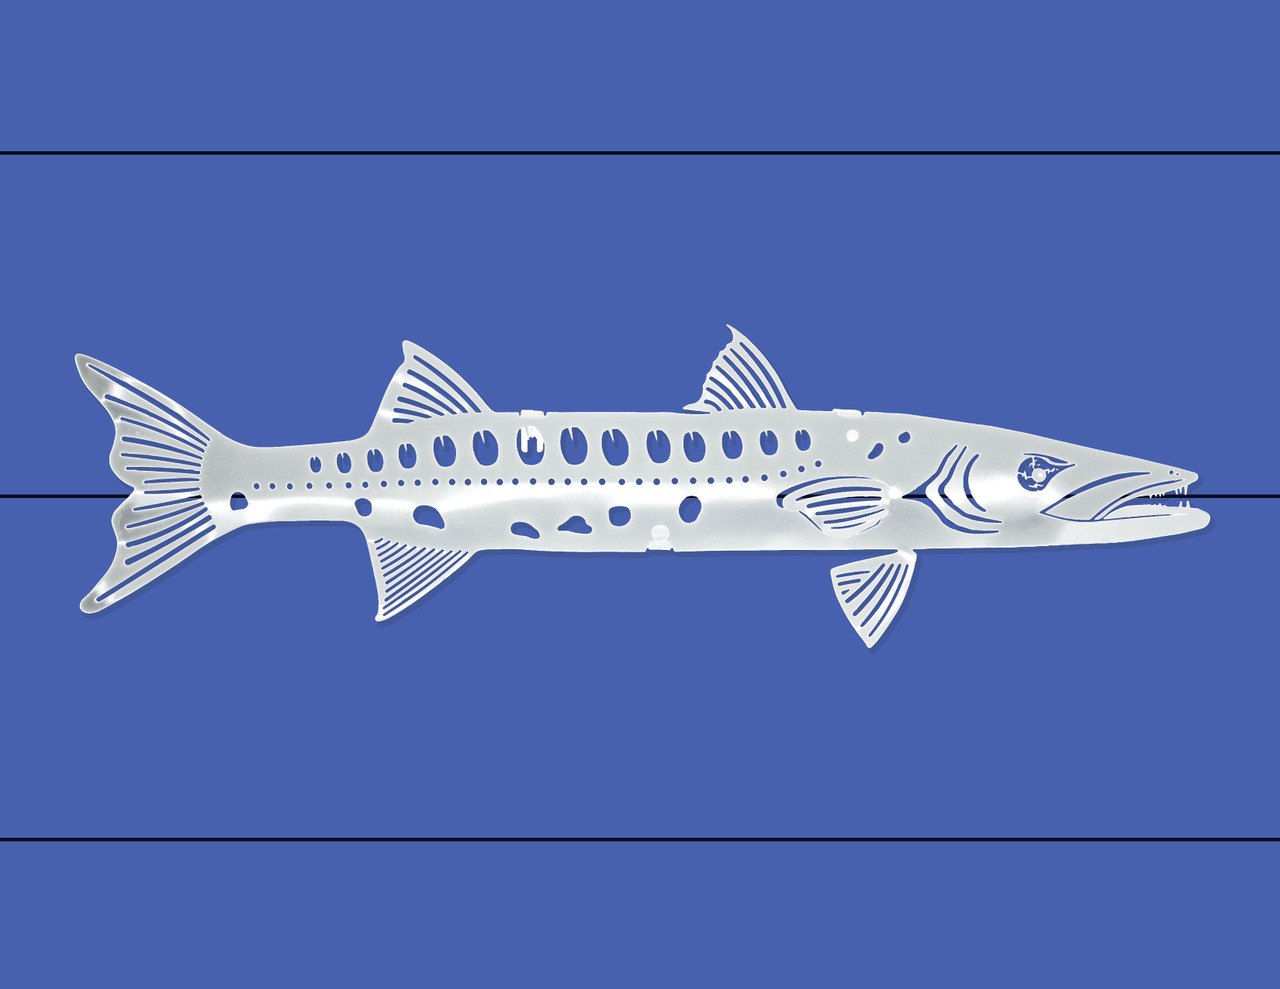 Barracuda Stainless Steel Wall Decor - Lifestyle